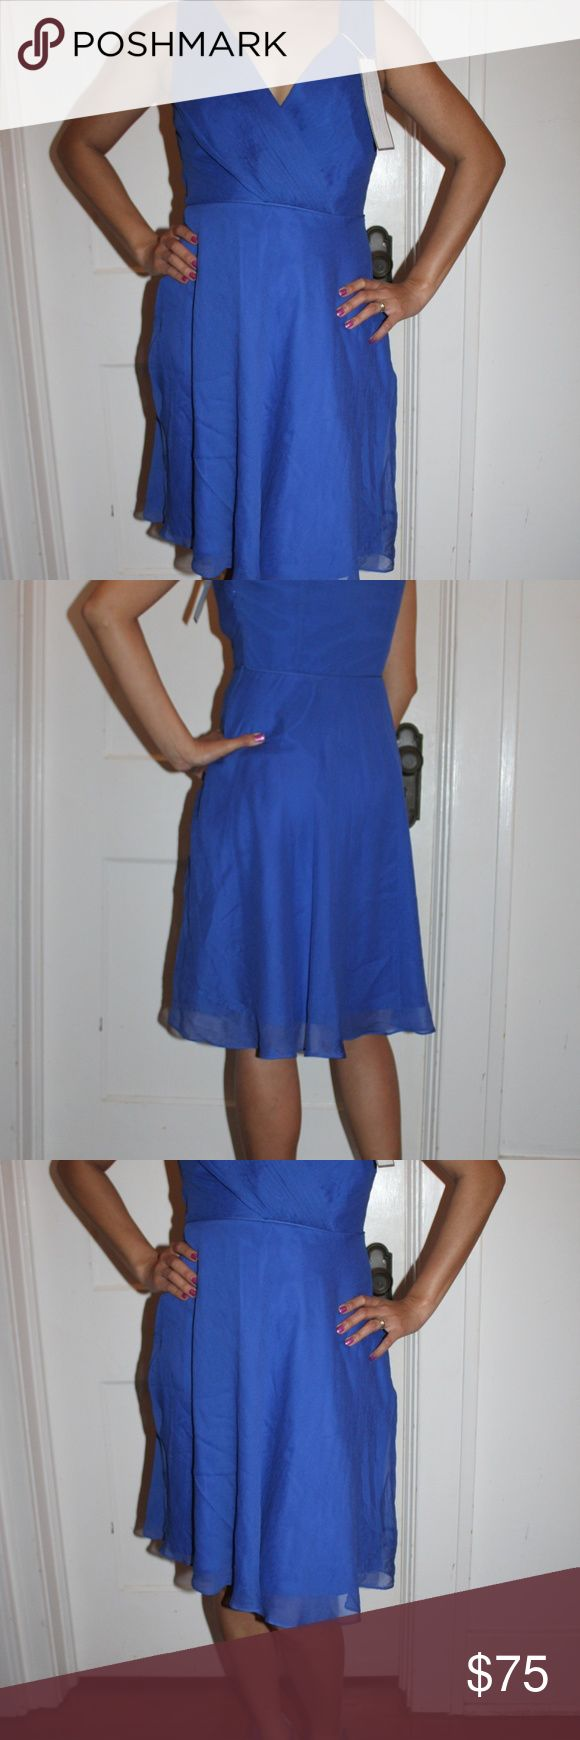 J CREW NWT Petites 2 Electric Blue Dress Stunning! From the sought after designer J Crew. Featuring this gorgeous electric blue dress made of 100% silk that is perfect for your formal/cocktail events. This is a beautiful piece!  MAKER: J CREW MATERIAL: 100% Silk, Lining 100% Polyester COLOR: Electric Blue DIMENSION: US Small J. Crew Dresses